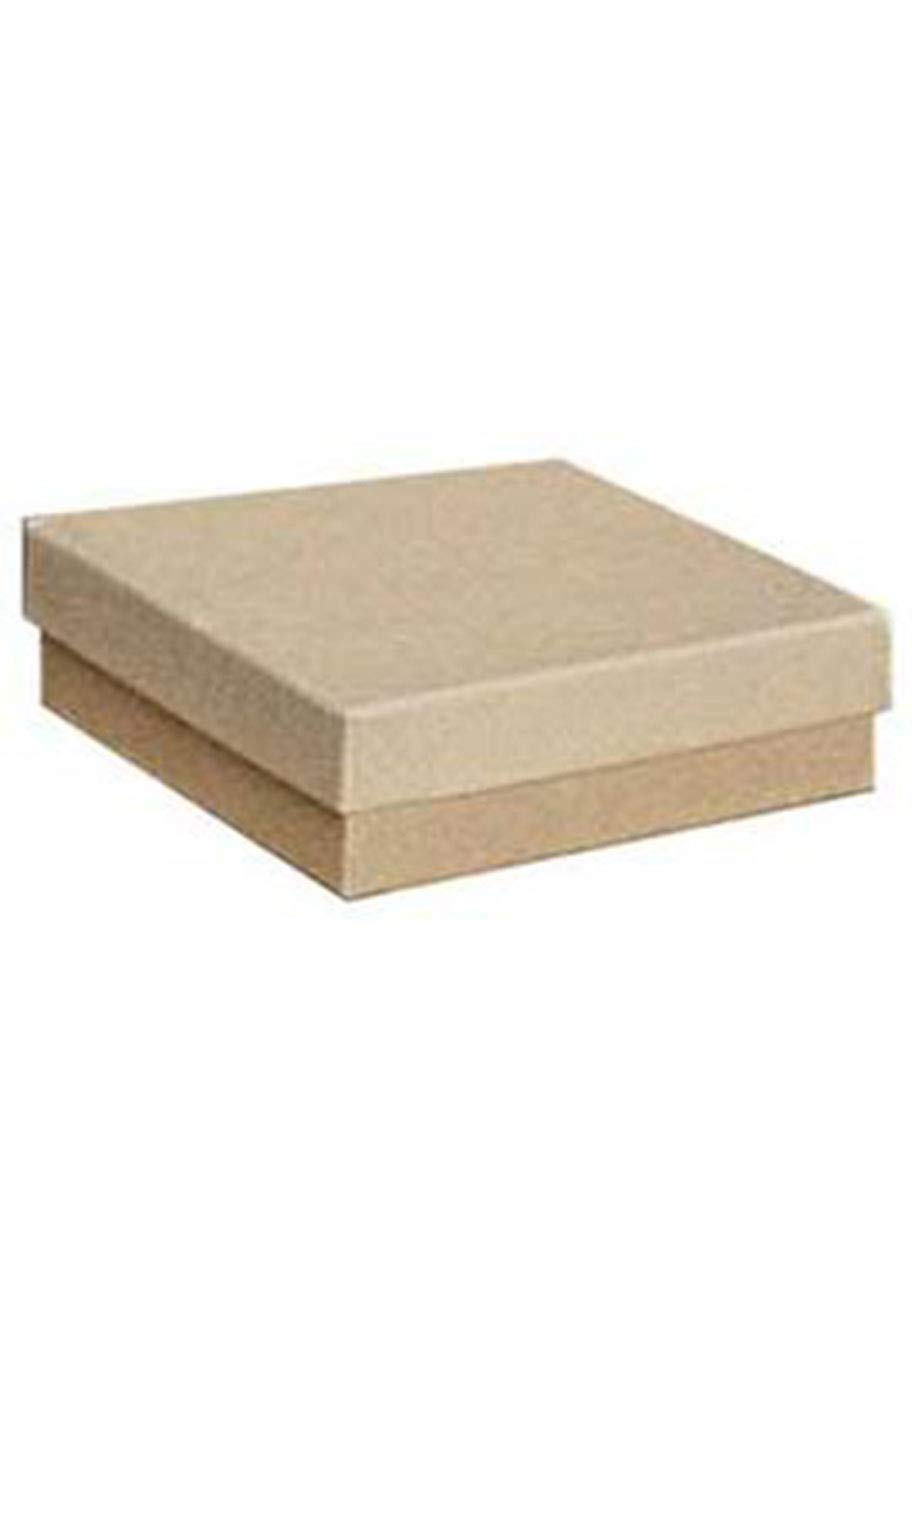 Cotton Filled Kraft Jewelry Boxes - 3½'' x 3½'' x 1'' - Case of 100 by SSWBasics